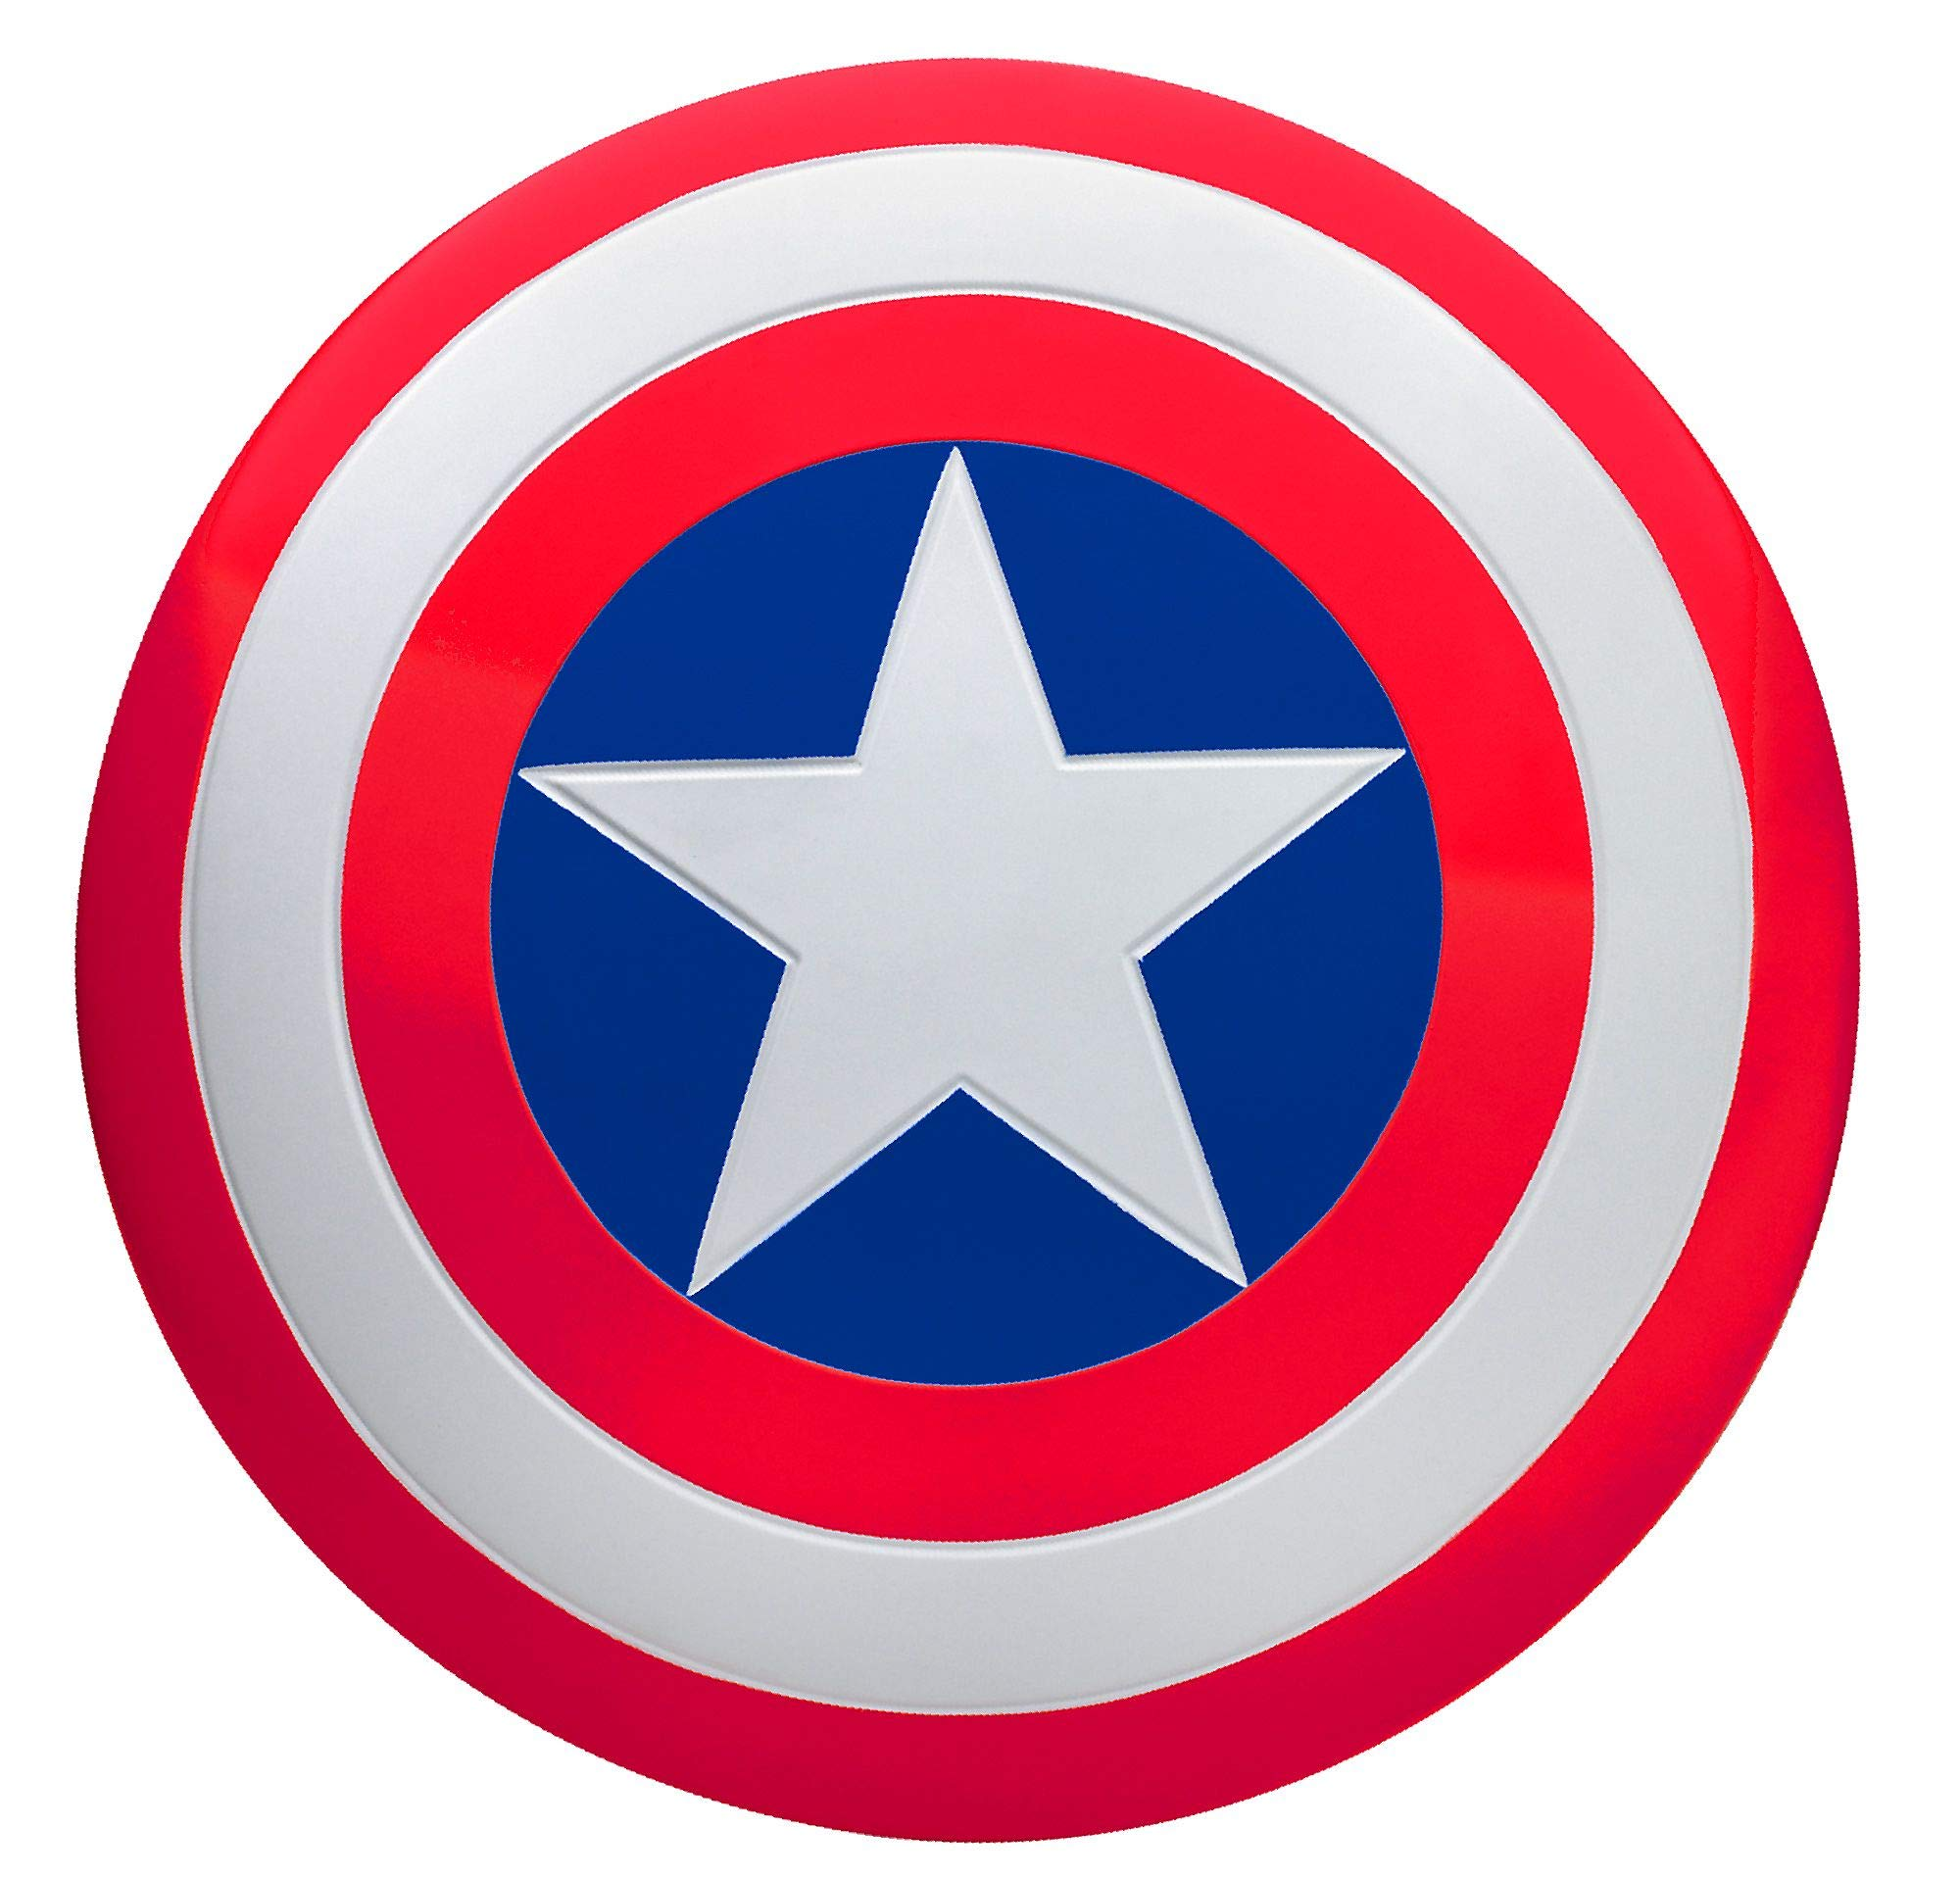 SUIT YOURSELF Captain America Shield for Adults, Measures 24 Inches Diameter, Plastic Prop Has Adjustable Hand Grips